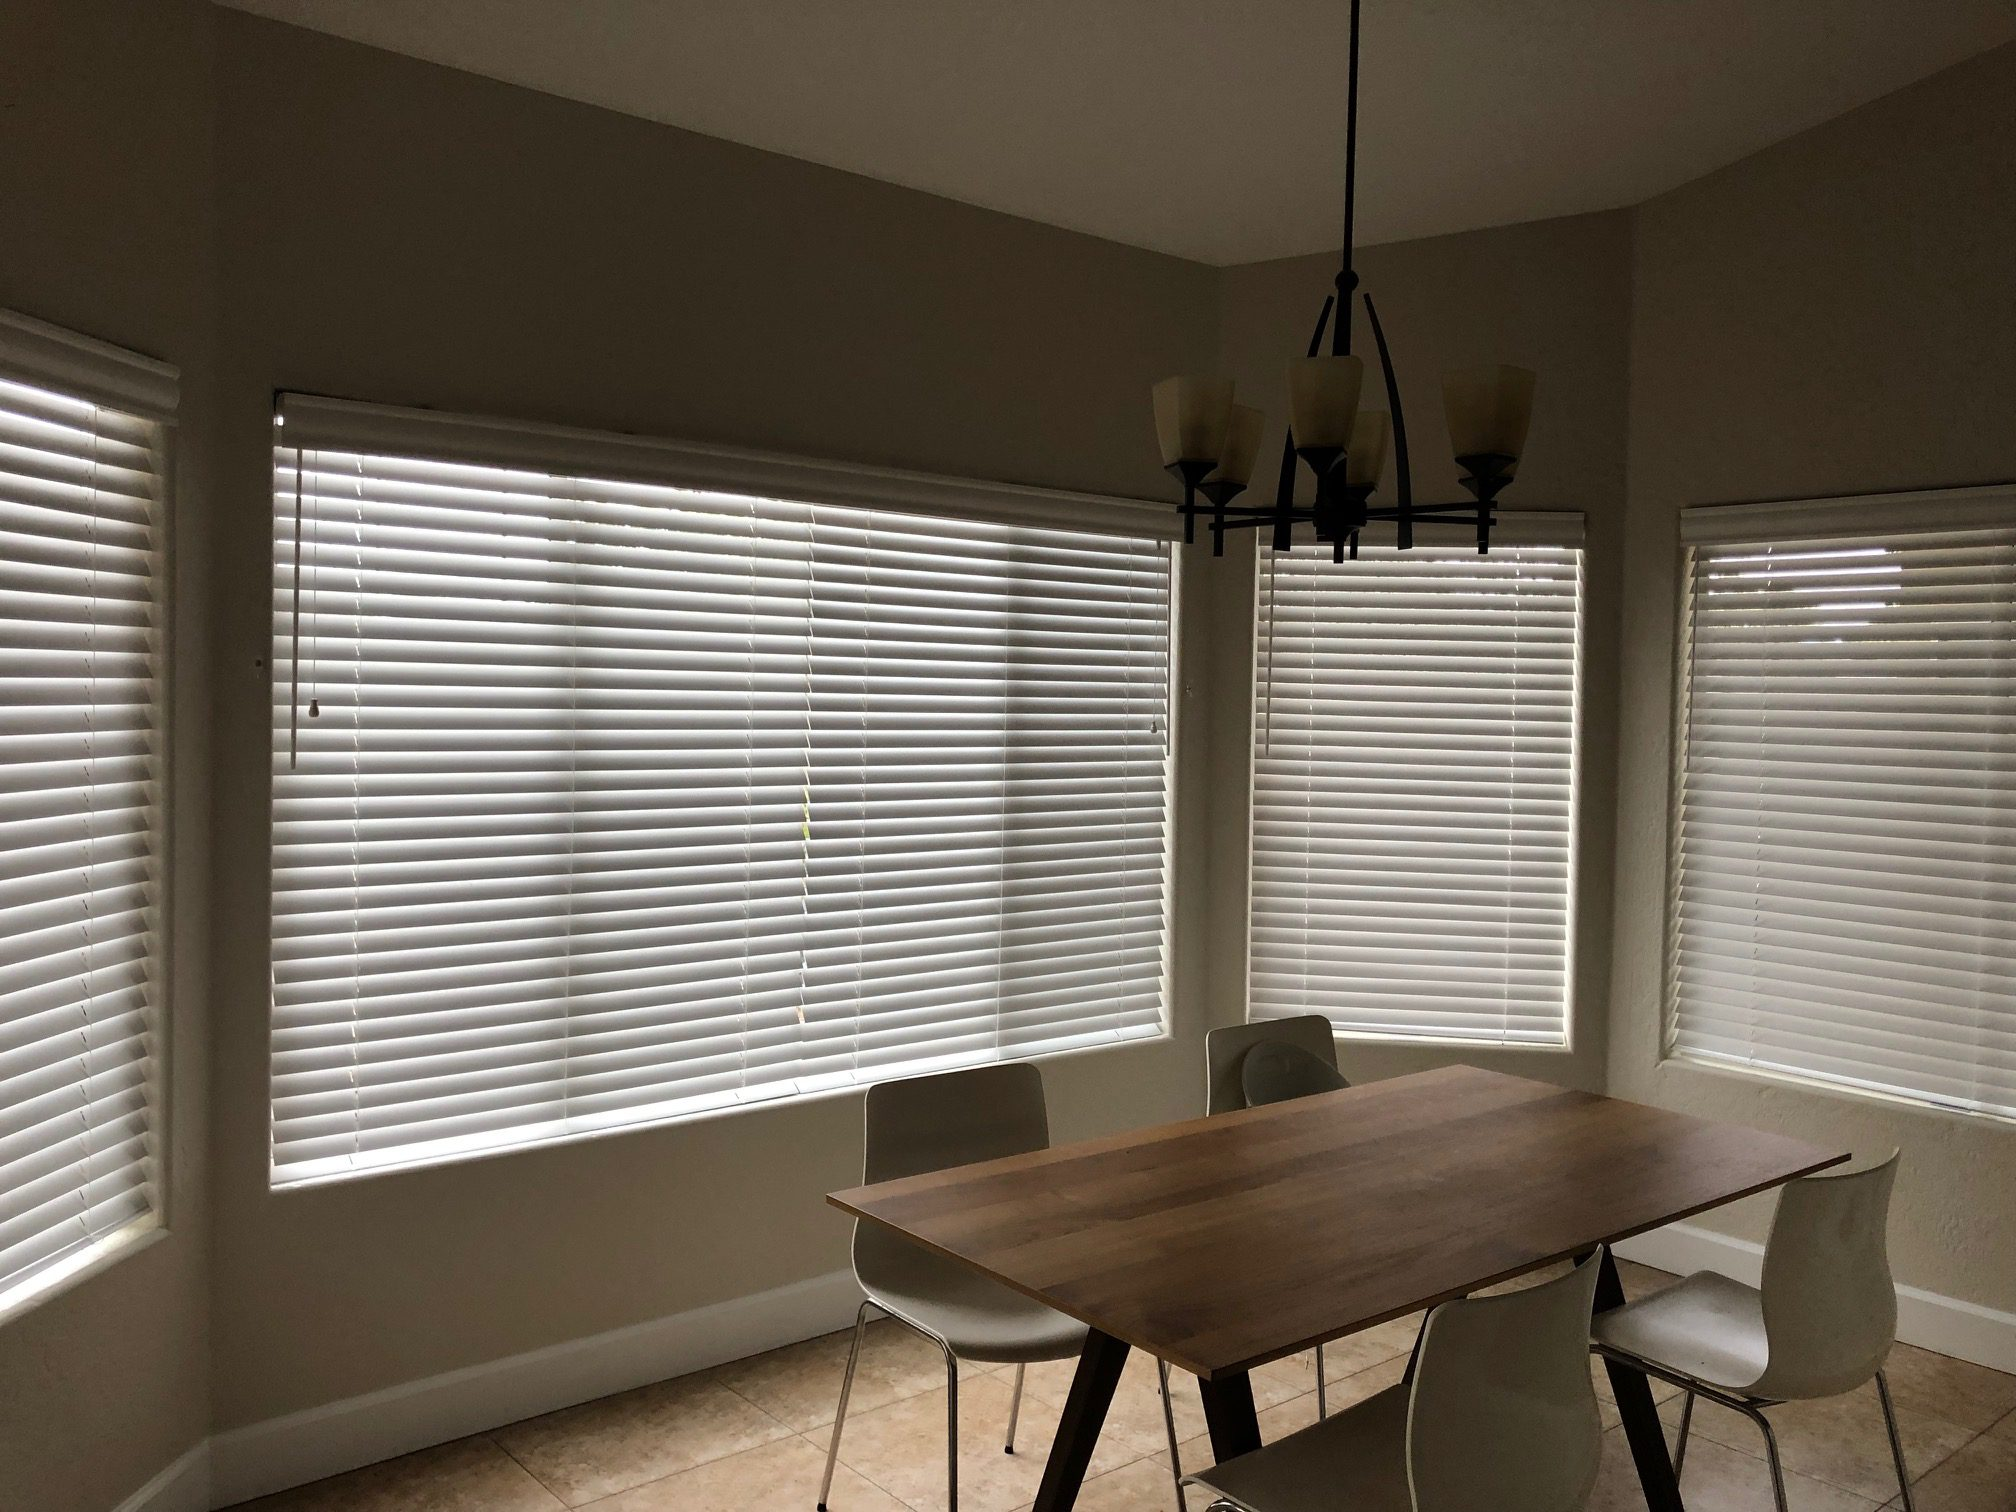 Premier 2 inch Wood Blinds in Ultra White in customer dining room